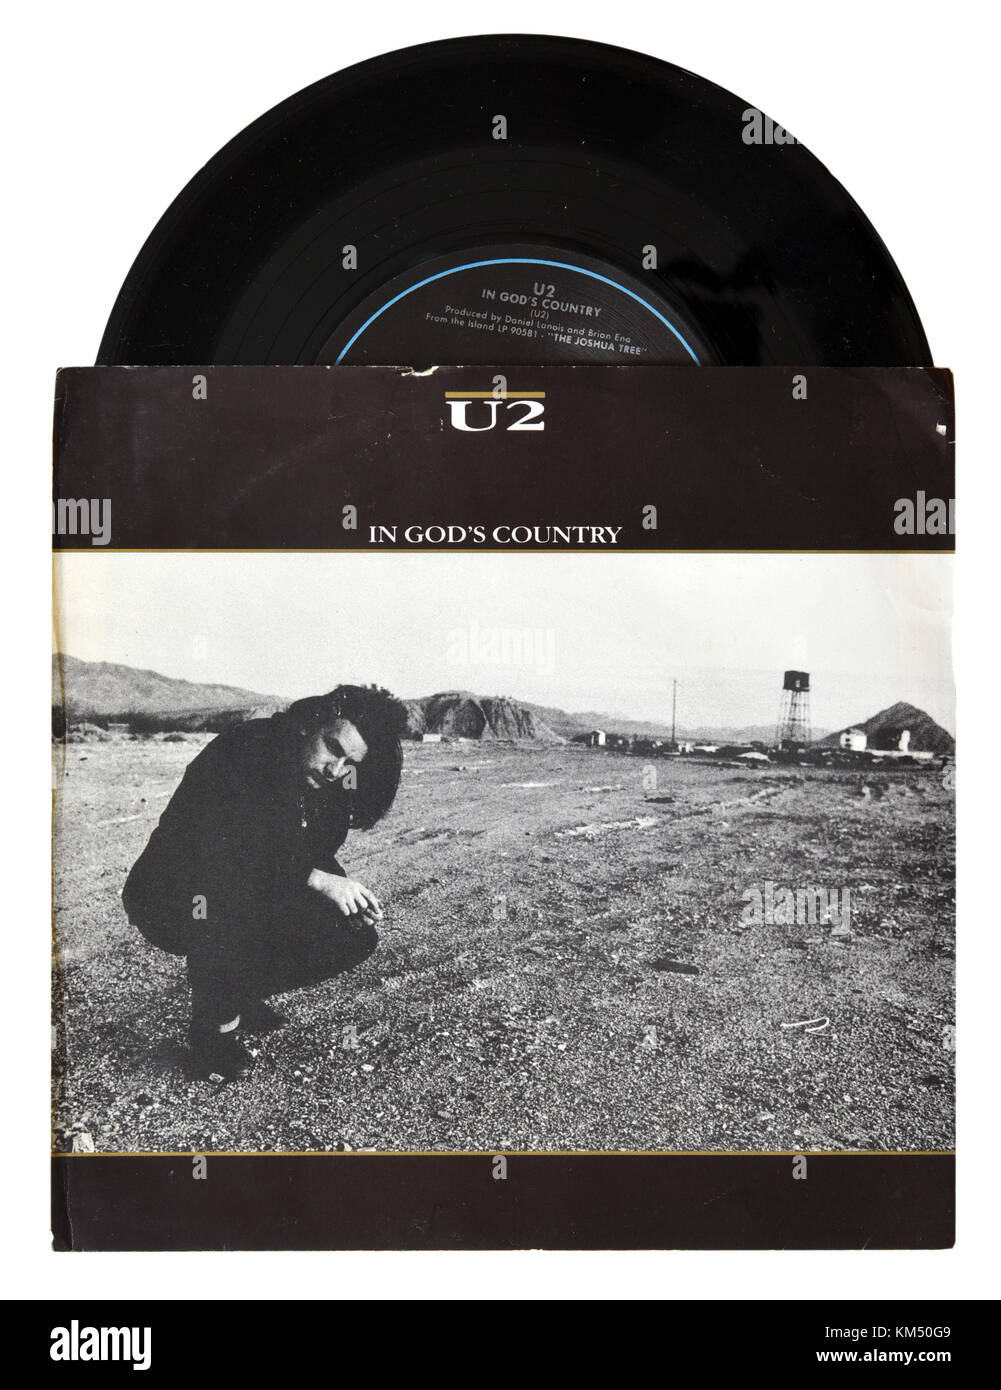 U2 In God's Country seven inch single - Stock Image